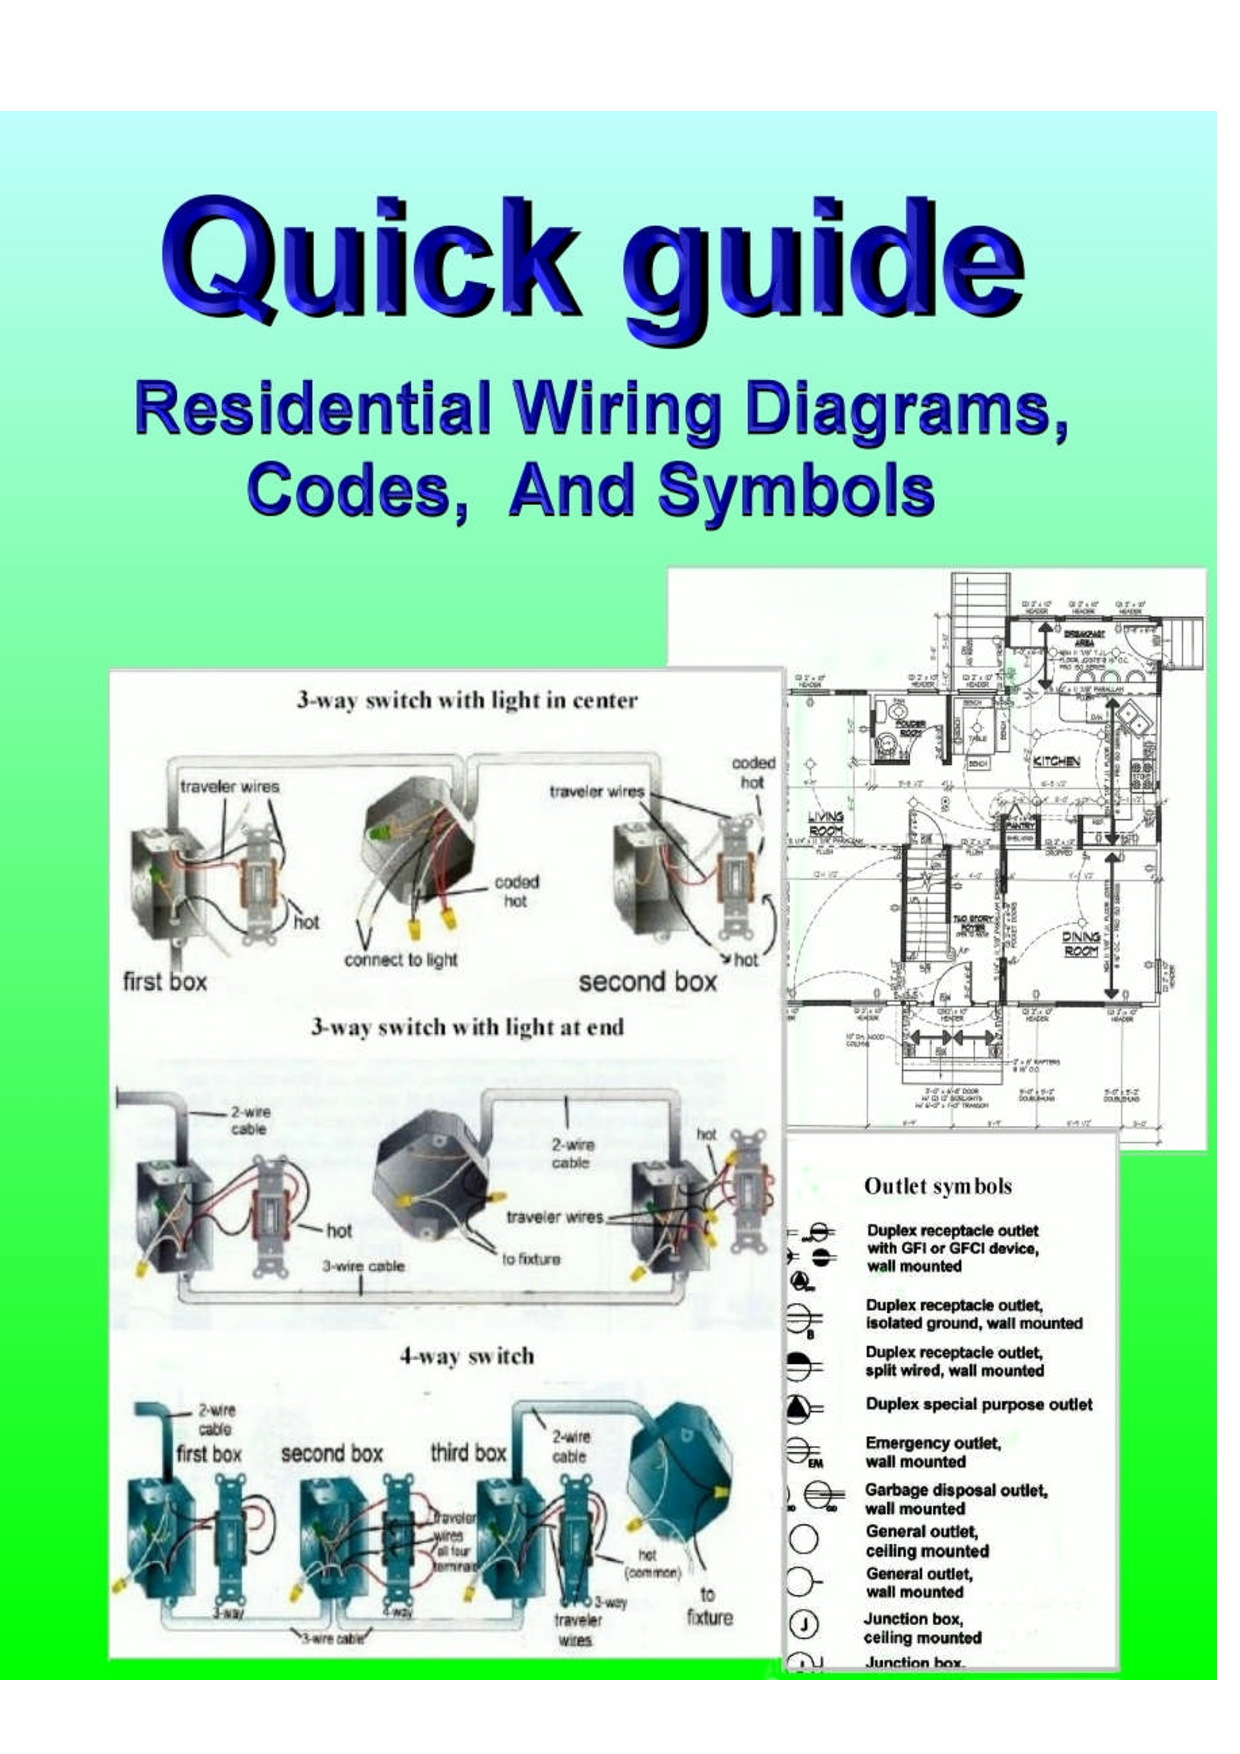 Diy Home Wiring Diagram - Wiring Diagram G11 Mobile Home Electrical Service Diagram on mobile home wiring diagram, mobile home flooring diagram, fleetwood mobile home plumbing diagram, dc electric generator diagram, electrical light switch wiring diagram, mobile home sewer pipe diagram, service panel diagram, bathroom fan light switch wiring diagram, rv electrical system wiring diagram, new home wiring diagram, double wide mobile home plumbing diagram, mobile home wiring codes, residential electrical meter wiring diagram, weatherhead electrical diagram, overhead service diagram, mobile home roof diagram, main electrical panel box diagram, home electrical panel diagram, mobile home framing diagram, mobile home hvac diagram,